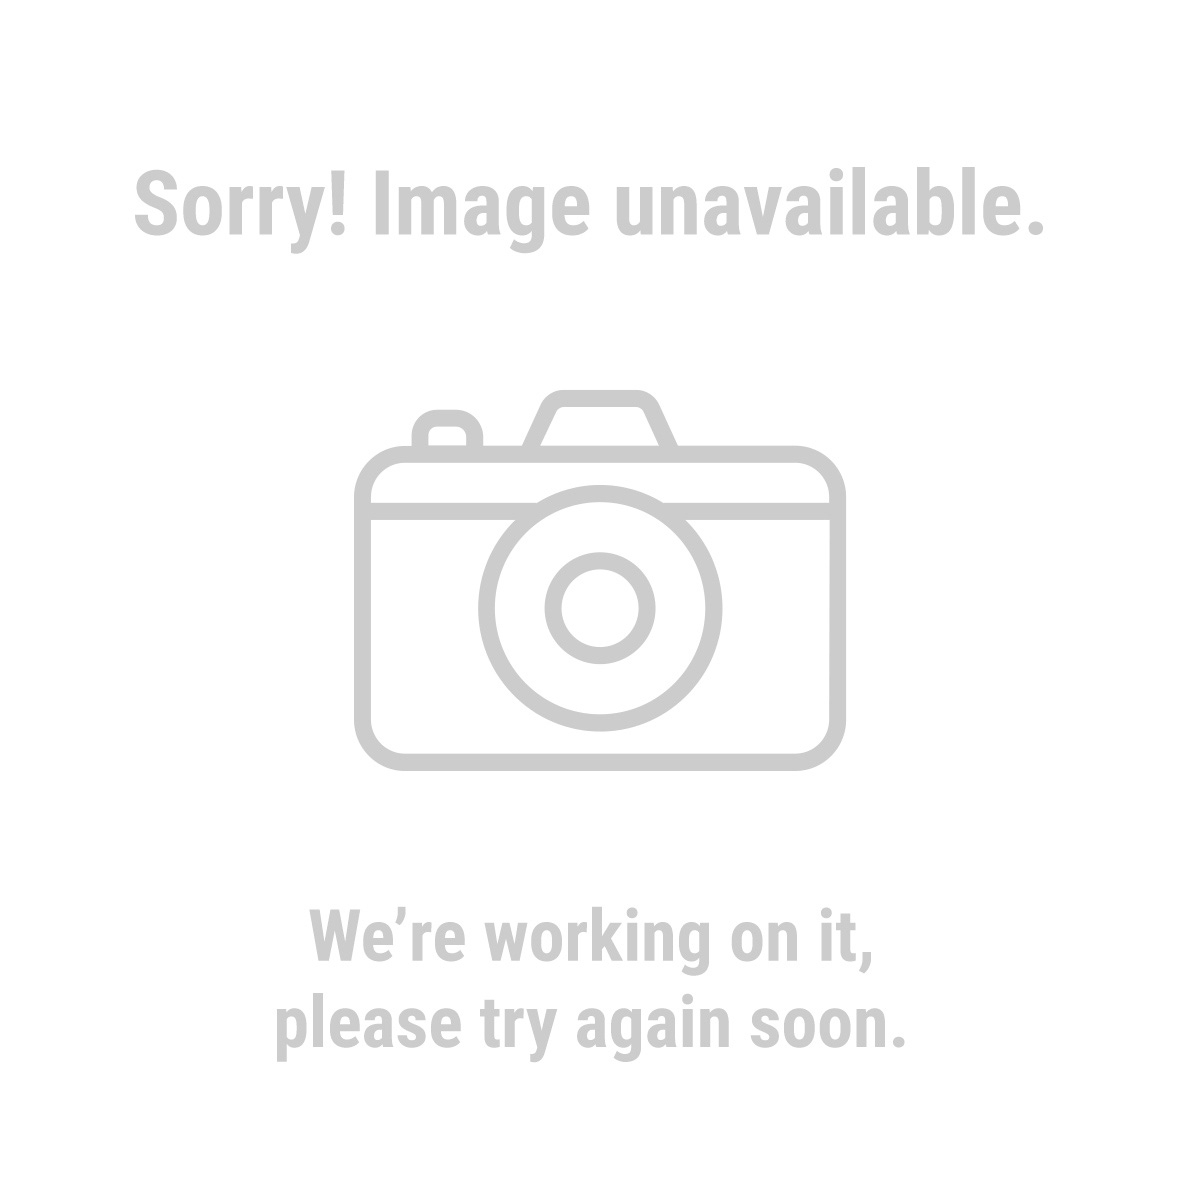 Chicago Electric Power Tools 41444 50 Ft. x 12 Gauge Outdoor Extension Cord